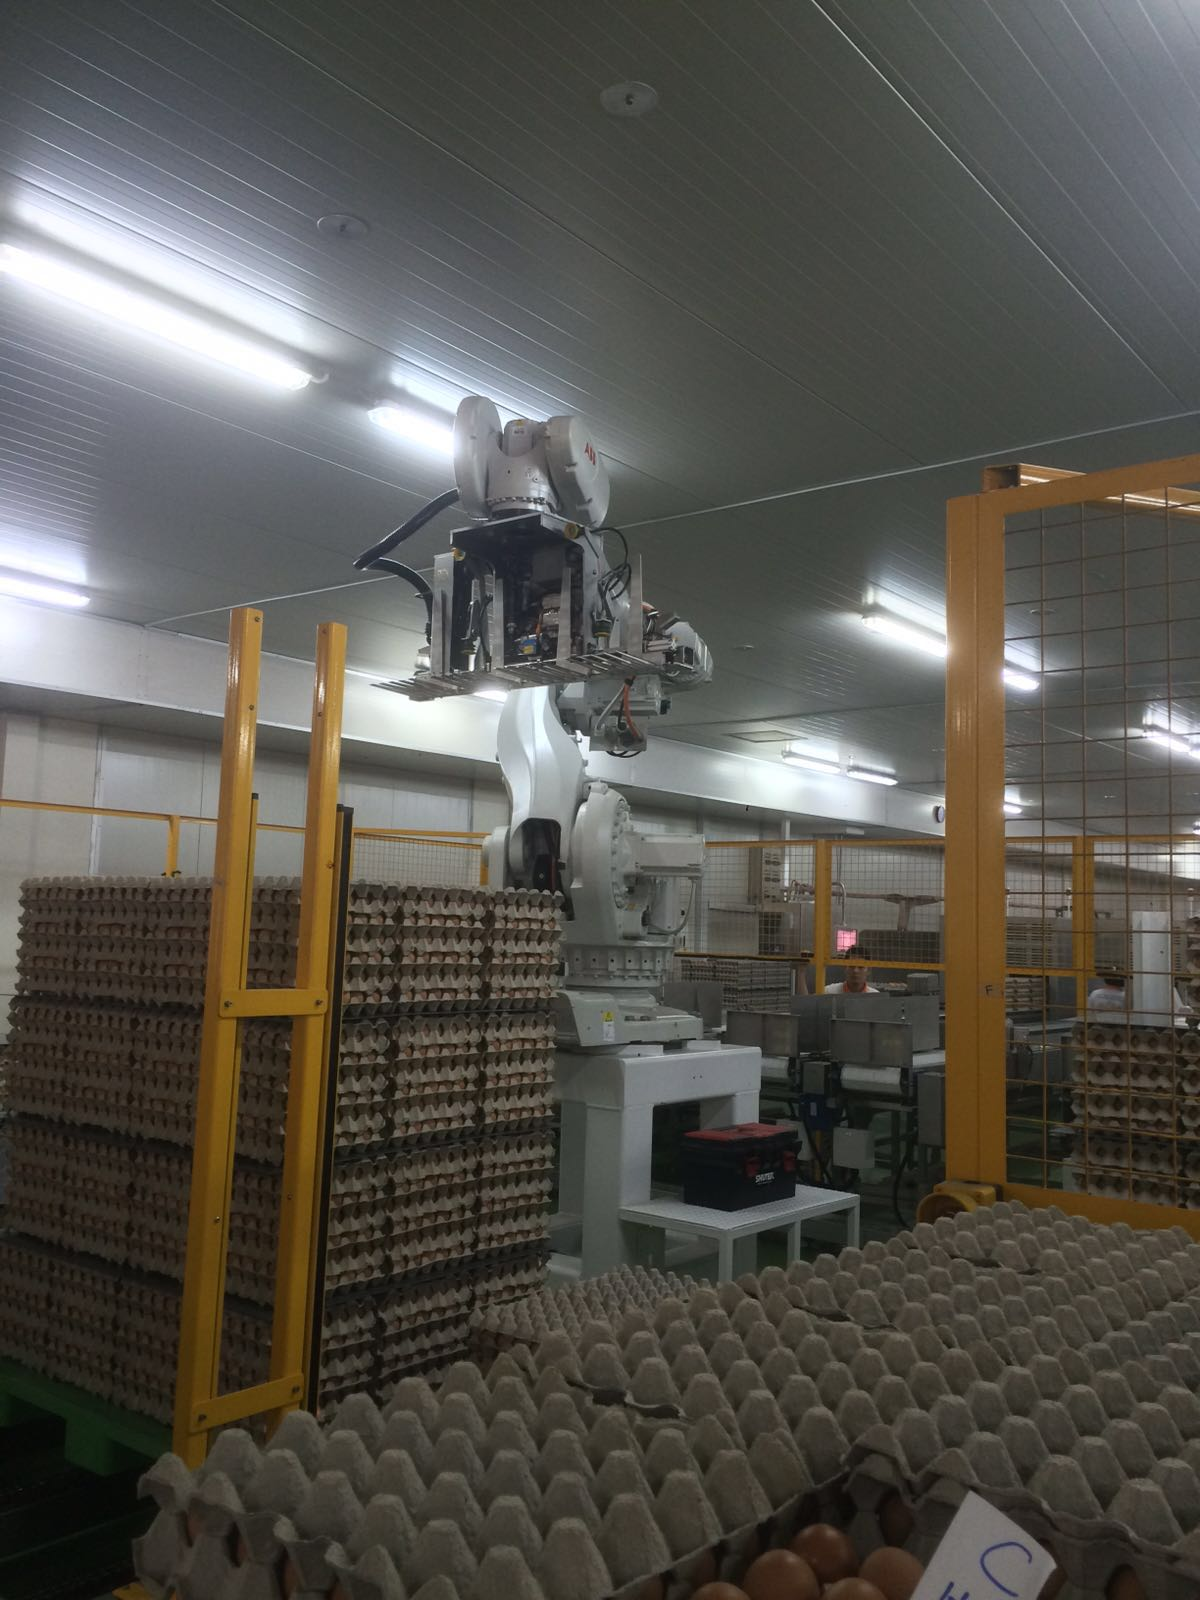 The impressive robotic arm effectively reduces the manpower labour costs, taking away the back breaking work of transporting heavy egg trays from one location to another.